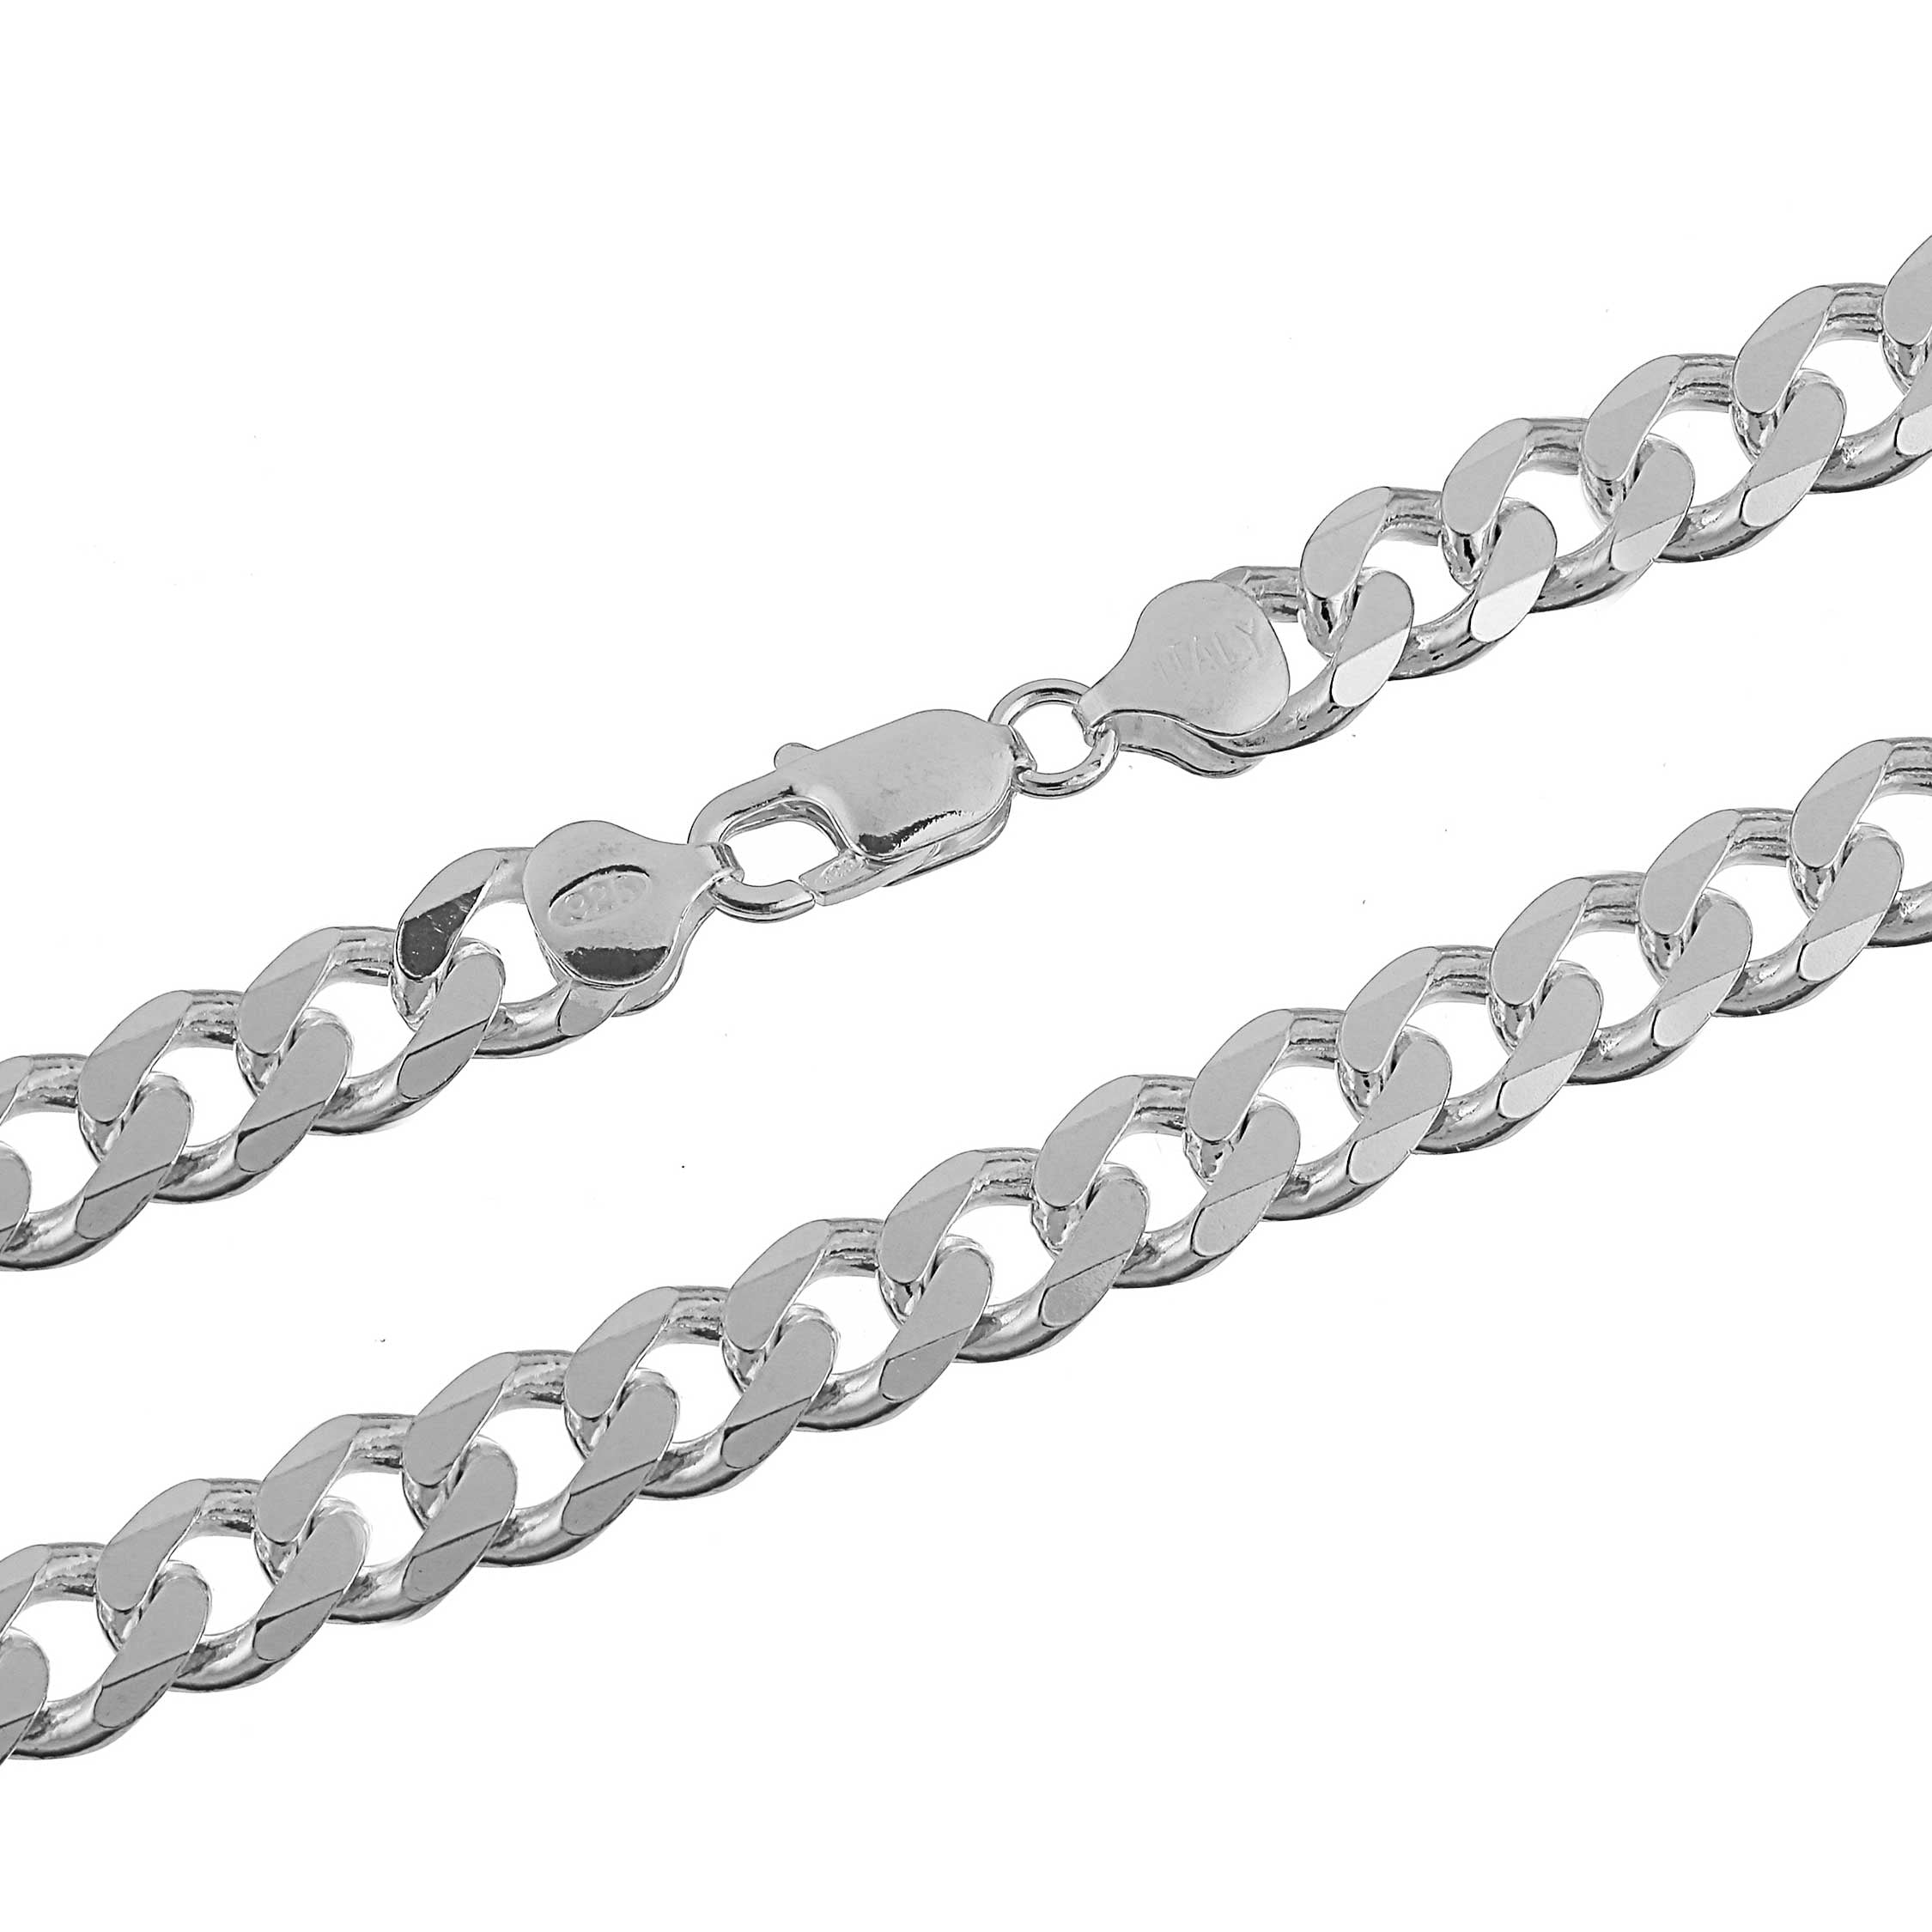 Lego 20 Silver Chains 5 Link Chain IN Silver New Flat Silver Chain Chains